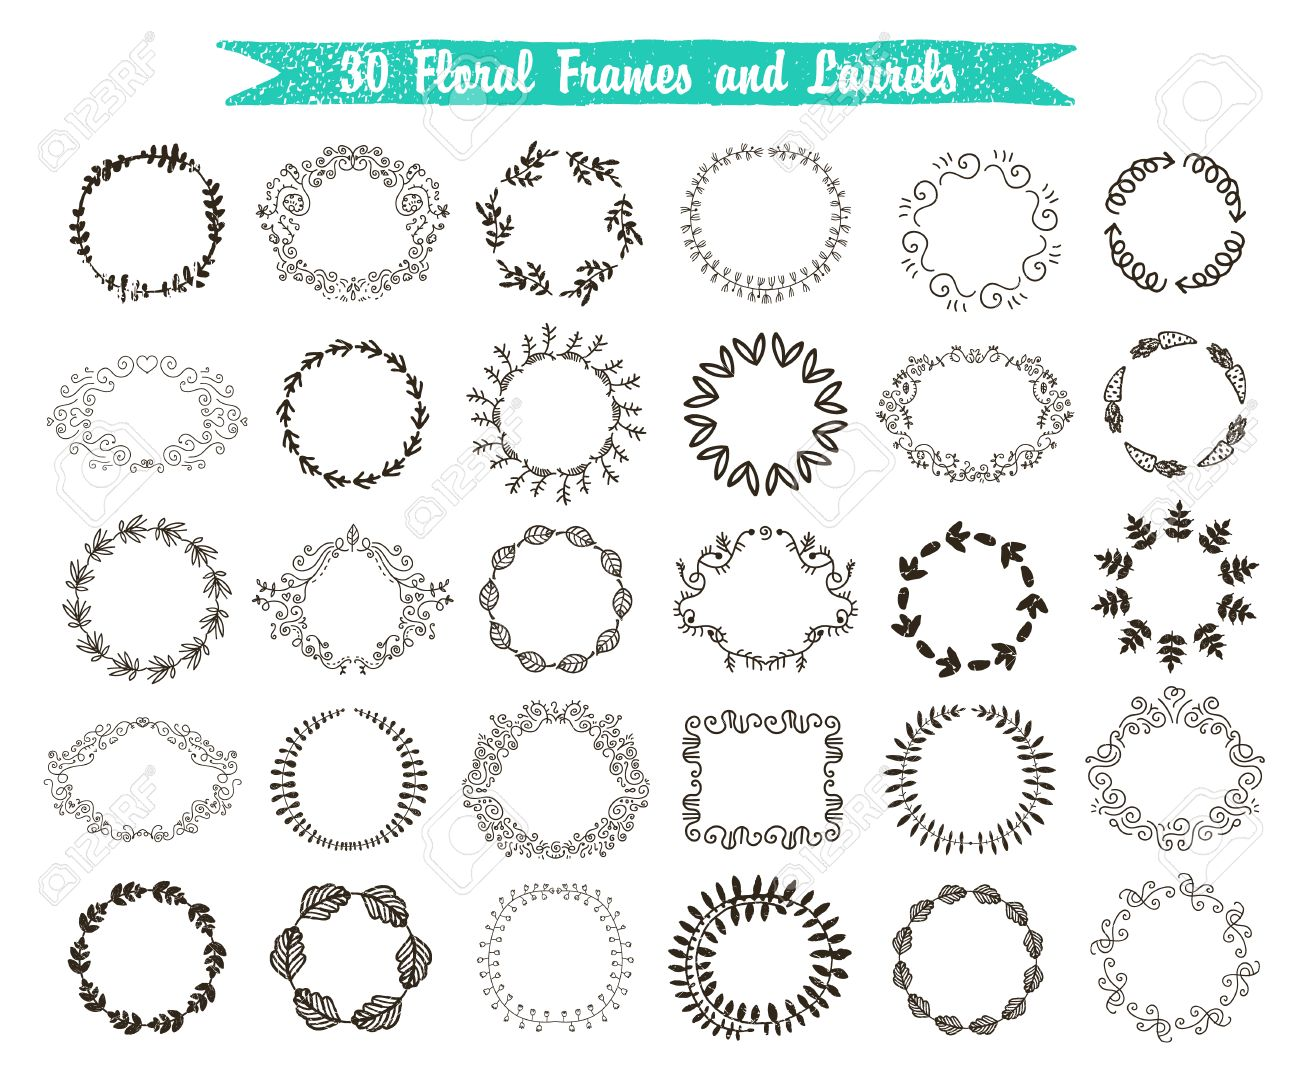 Vector set of 30 hand drawn frames and laurels. Floral, vintage, swirl wreaths isolated. - 47346921